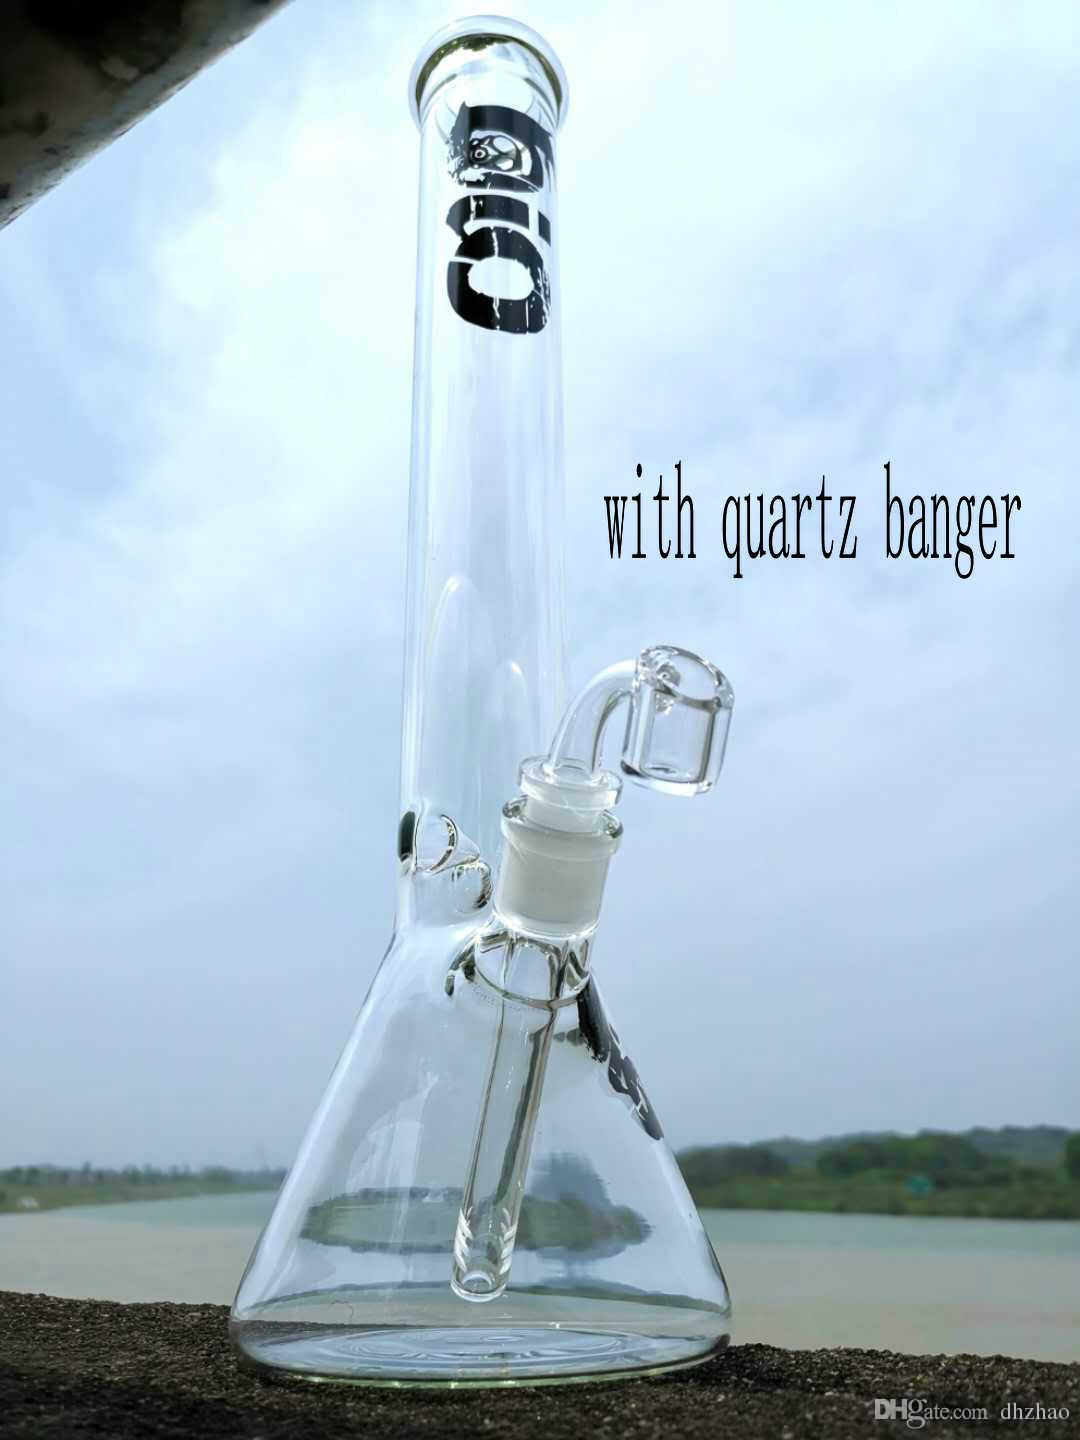 "Dhzhao beaker base water pipes hot selling glass bong ice catcher with quartz banger or bowl thick glass for smoking 17"" bongs"